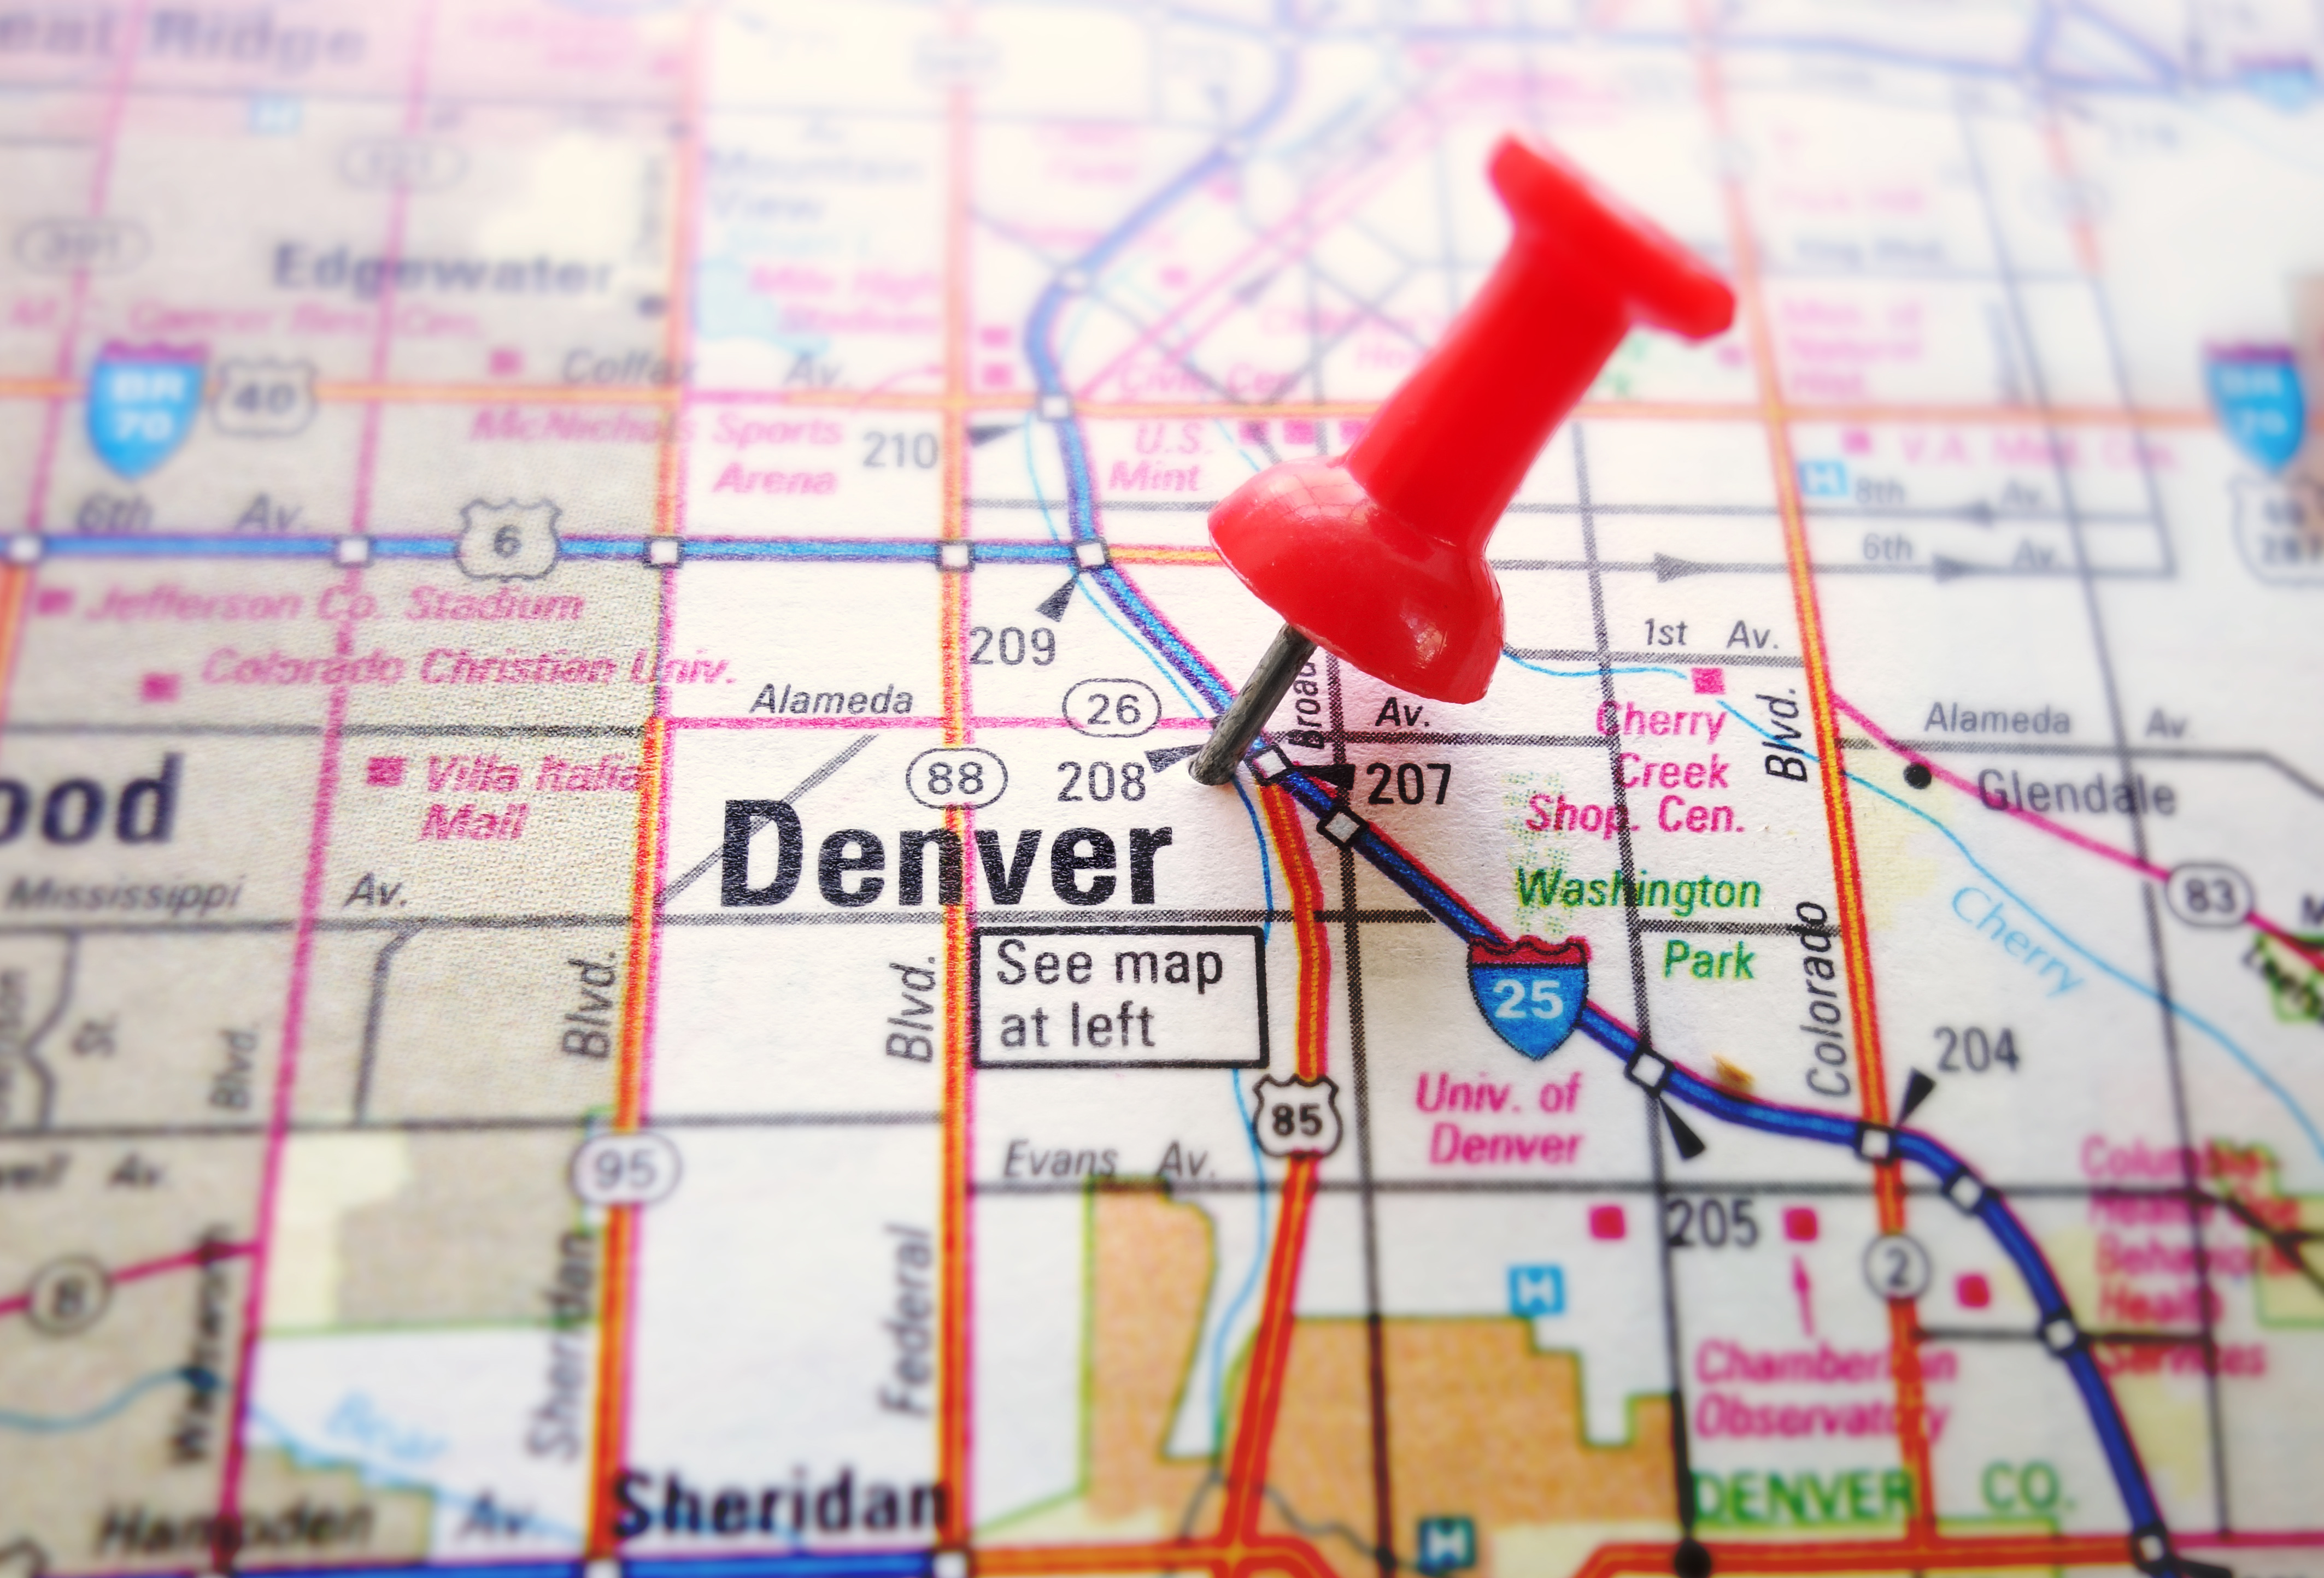 Denver Colorado on a map